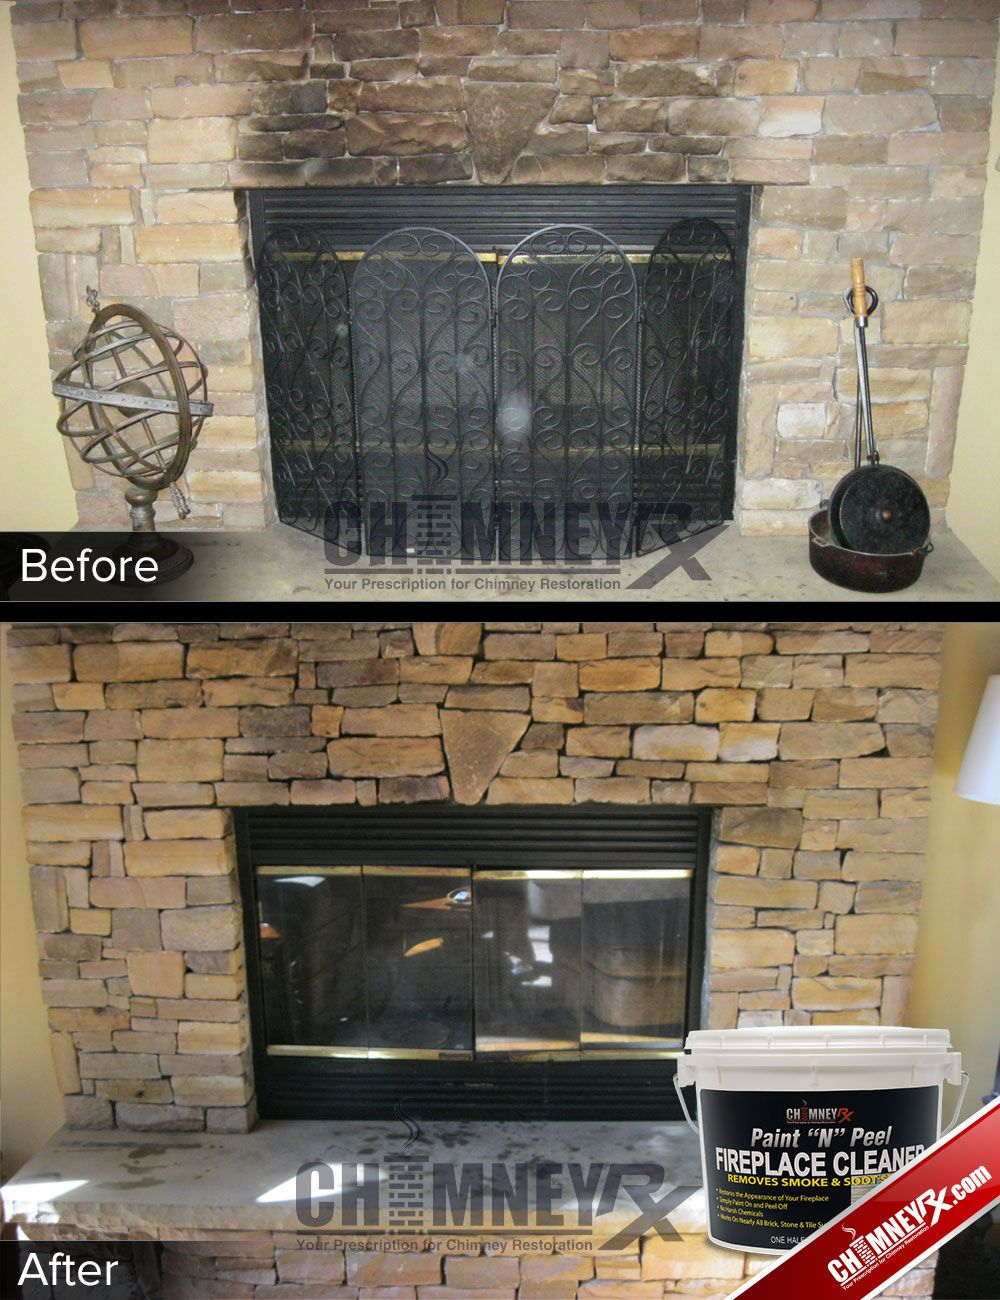 Smoke Stains On A Stone Fireplace Before And After Being Cleaned With Paint N Peel Fireplace Cleaner Clean Fireplace Diy Fireplace Fireplace